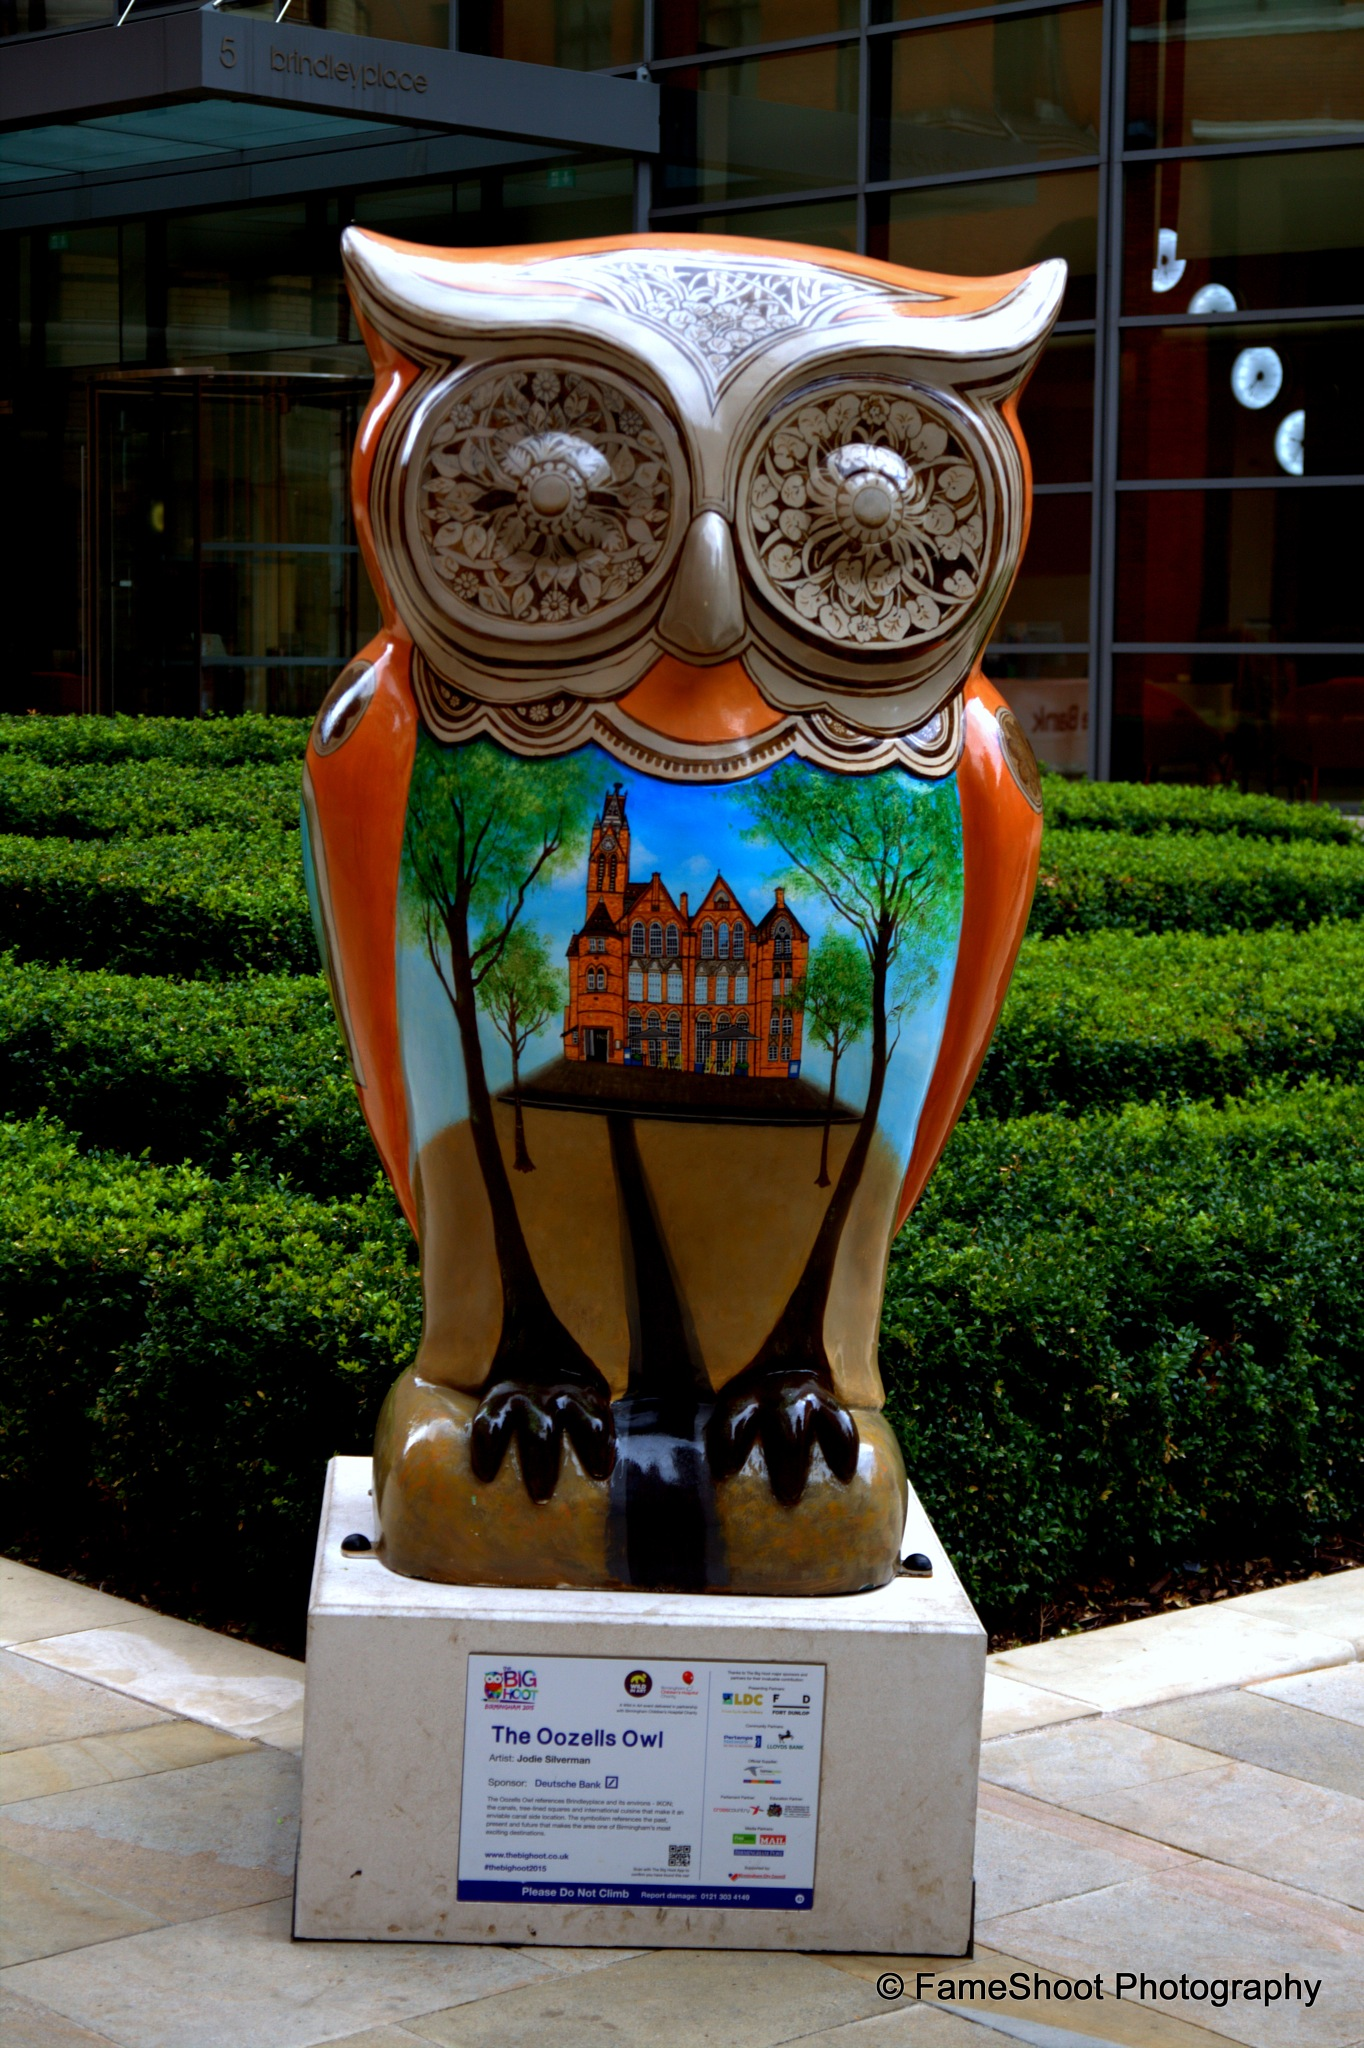 The Oozells Owl by Fame Shoot Photography